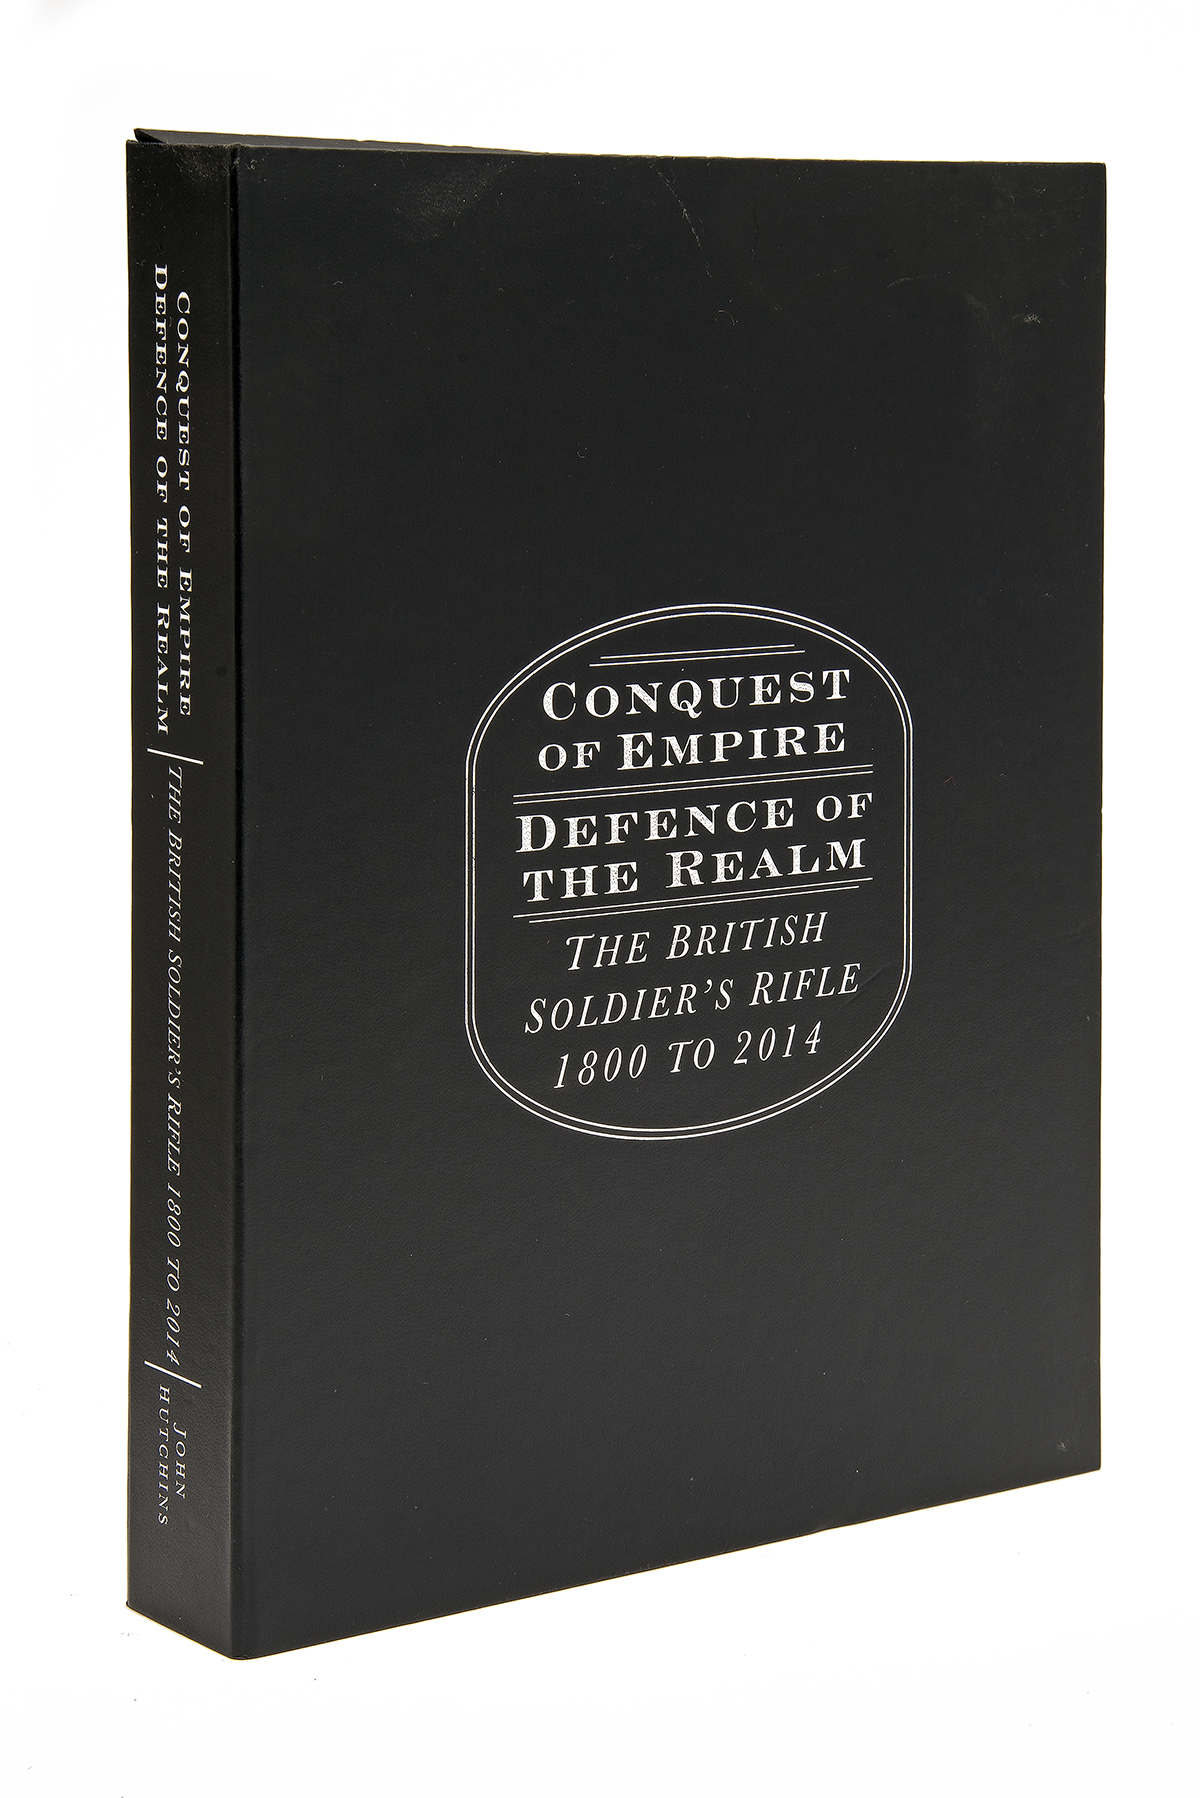 JOHN HUTCHINS 'CONQUEST OF EMPIRE, DEFENCE OF THE REALM. THE BRITISH SOLDIER'S RIFLE 1800 TO